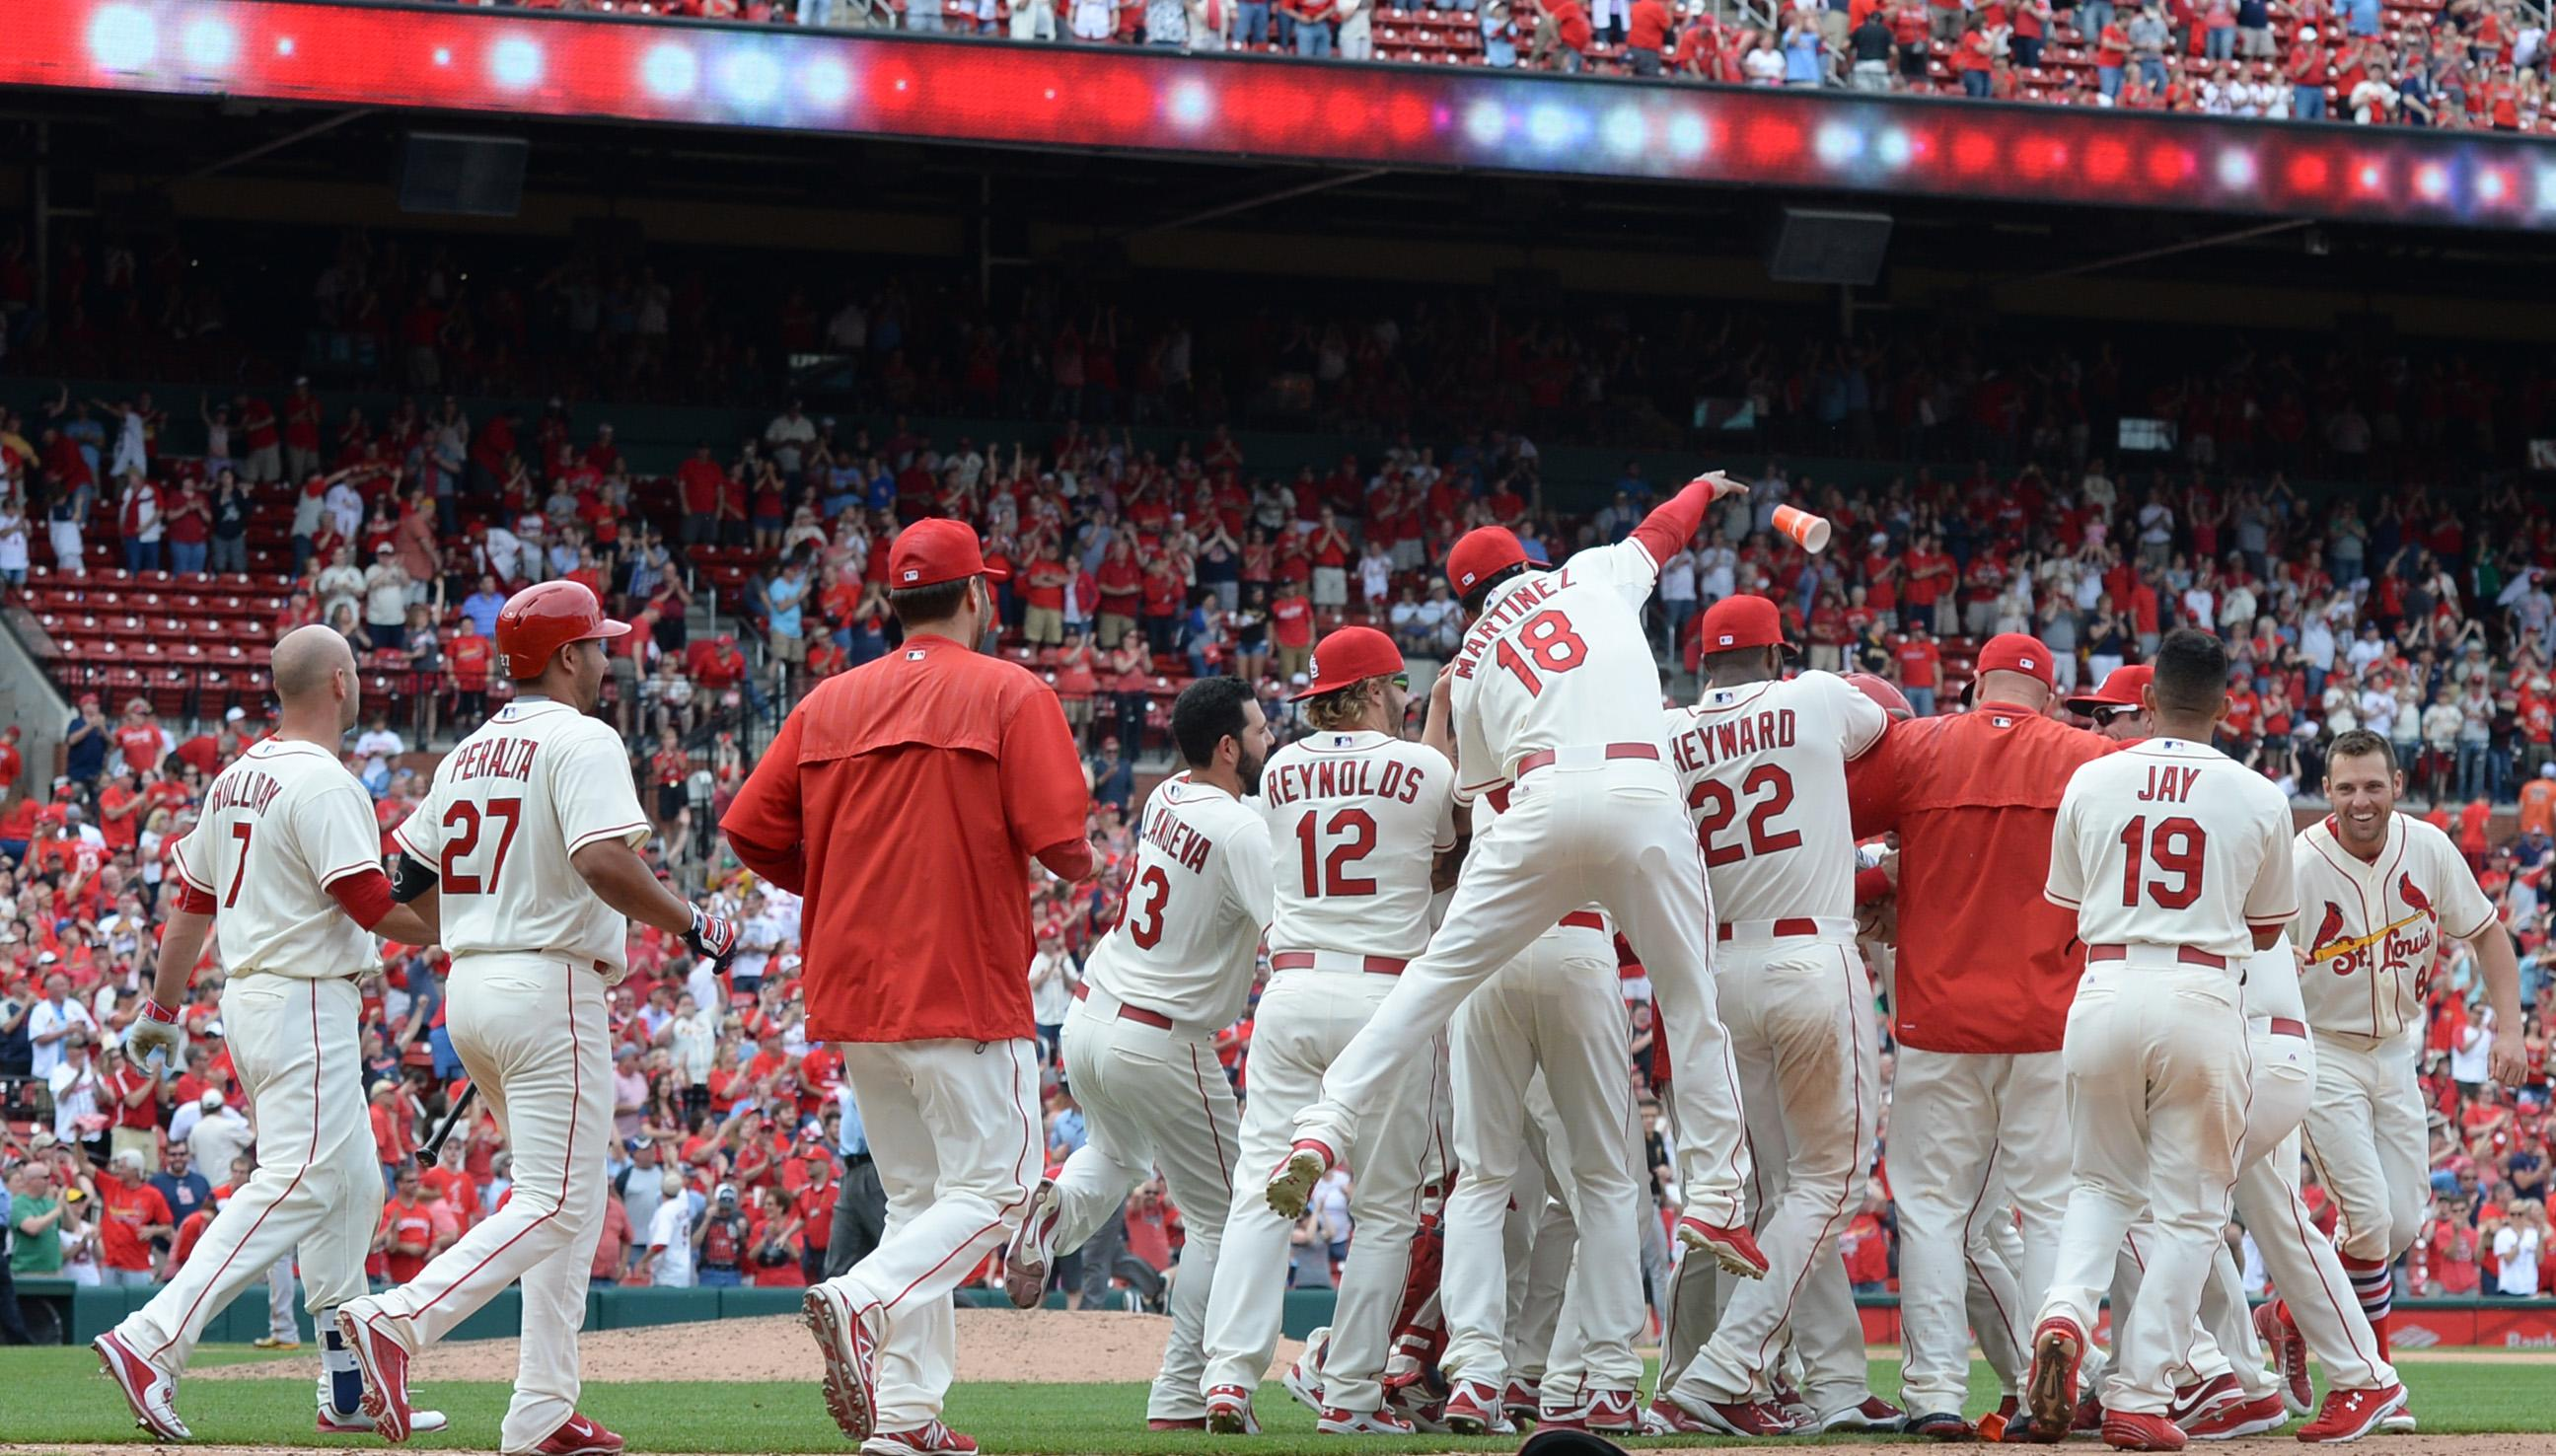 Cards again beat Pirates 2-1 in extras, win in 11th